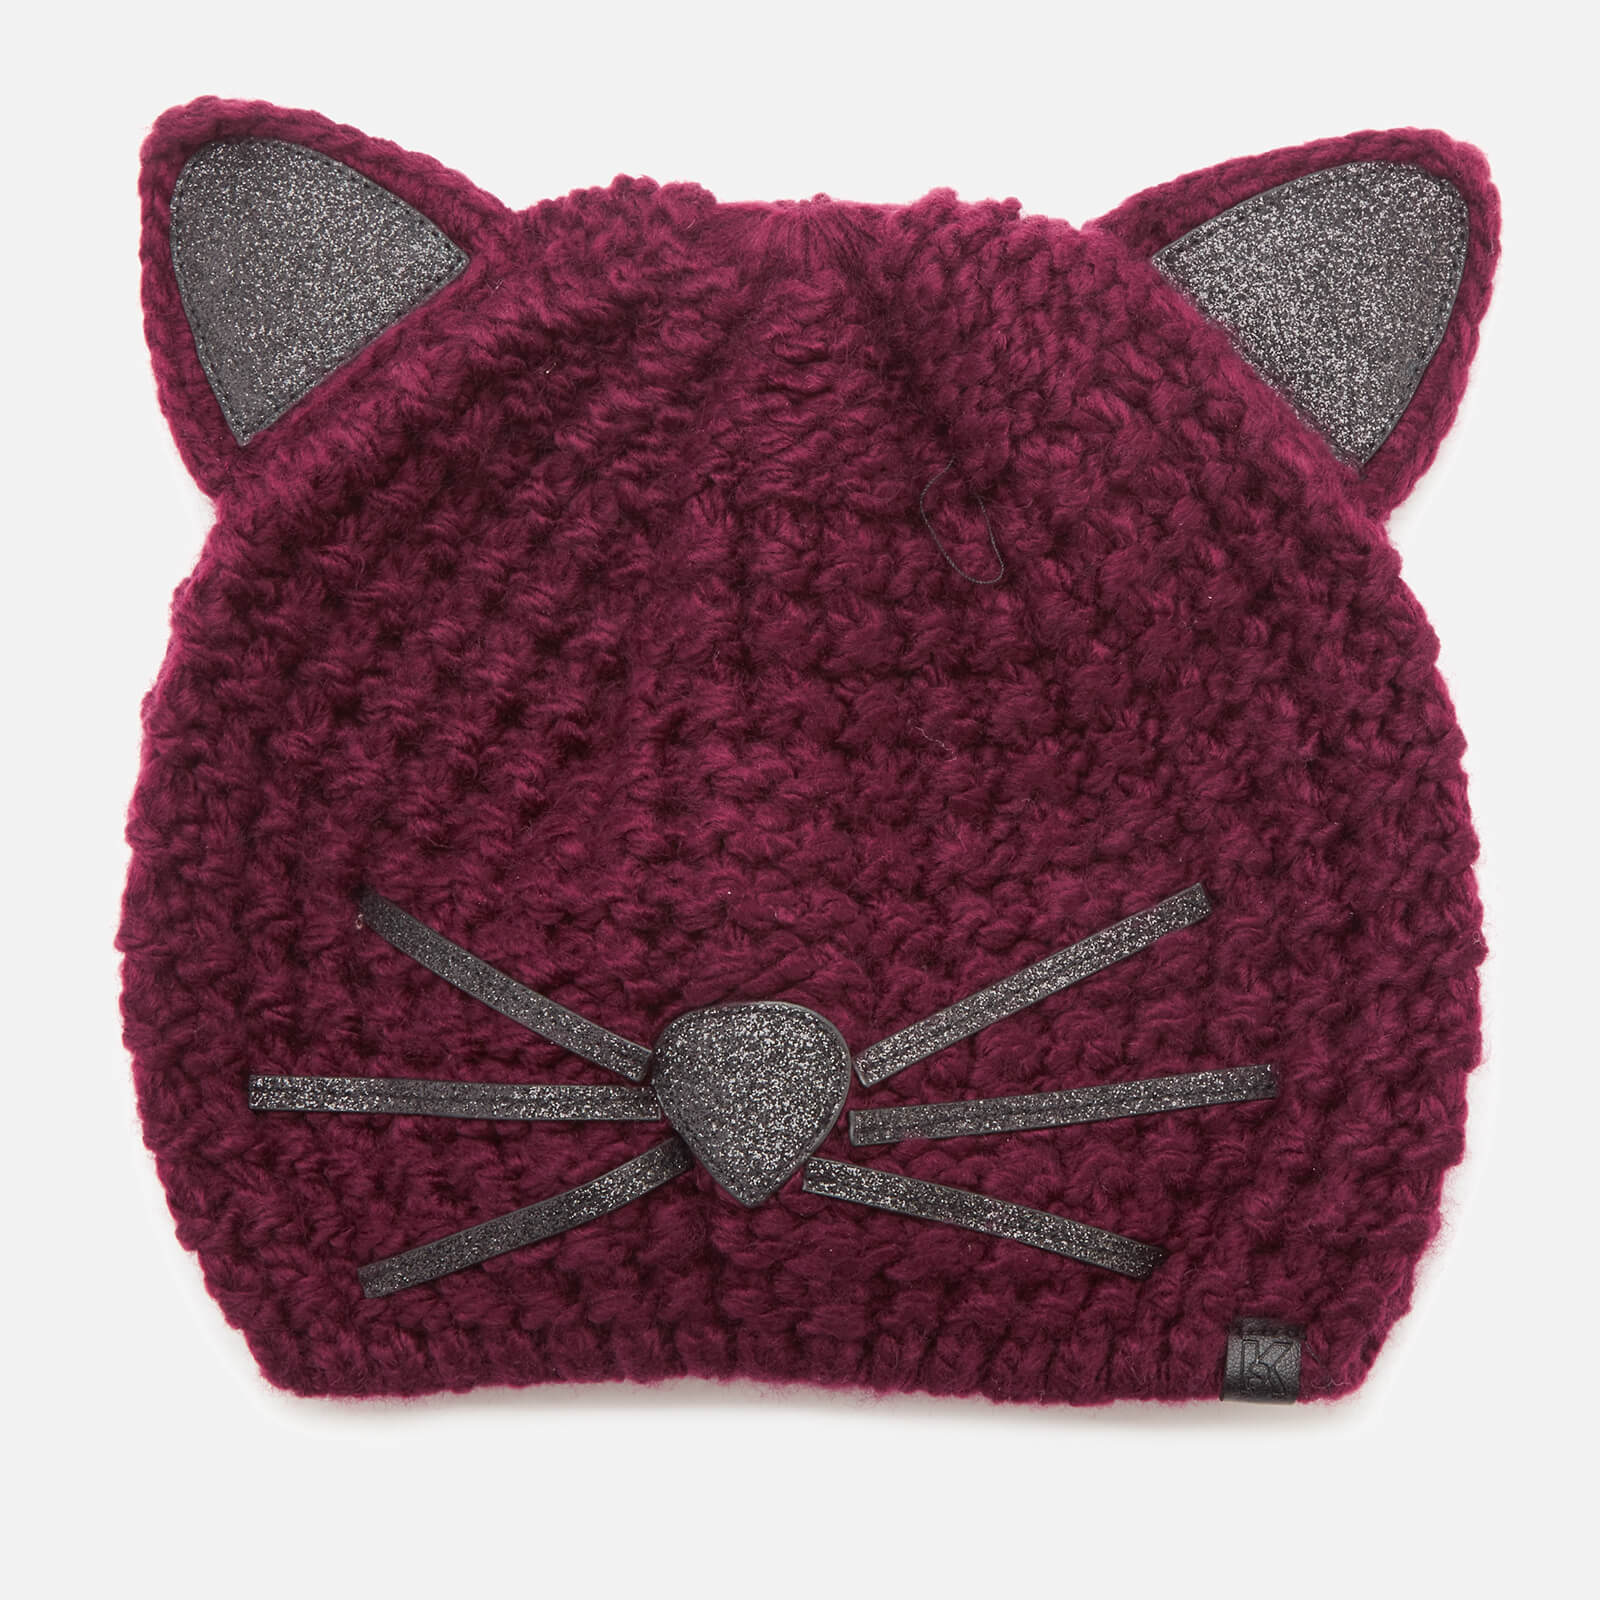 1b36029ec89 Karl Lagerfeld Women s Choupette Luxury Beanie - Fig - Free UK Delivery  over £50